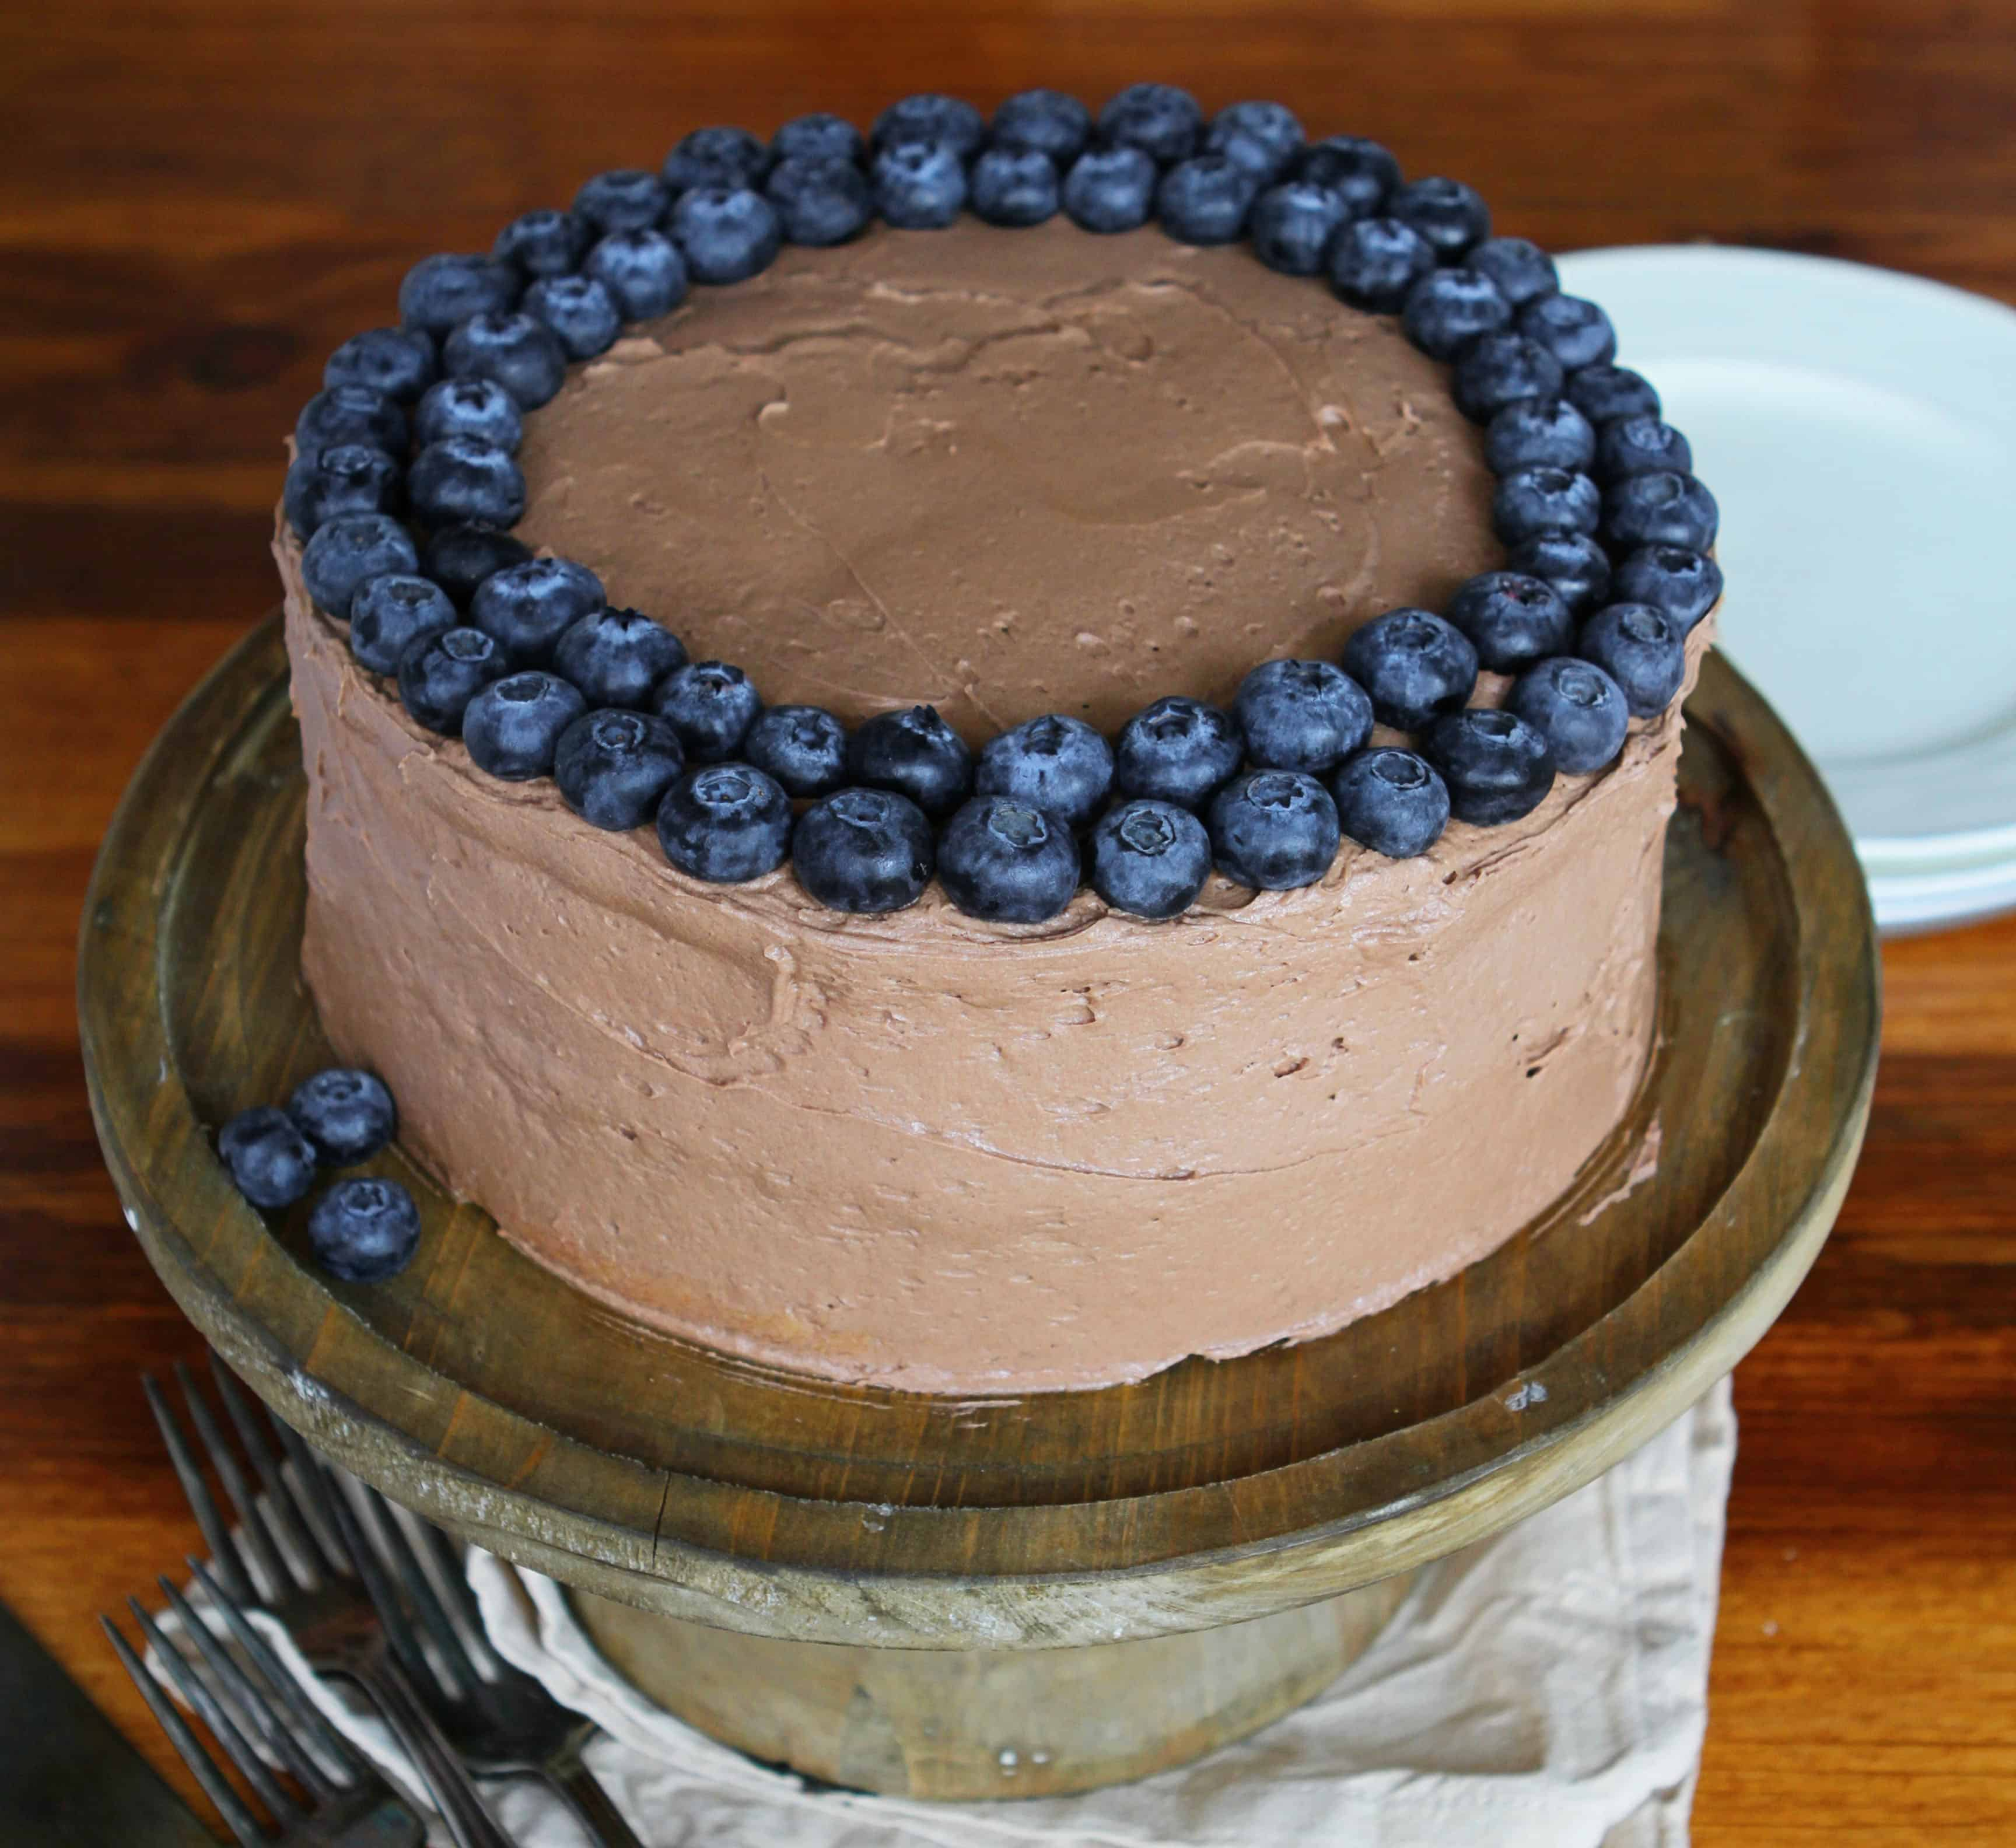 White Cake with Zucchini with Chocolate Frosting and Blueberries on Wooden Table with Plates in Background